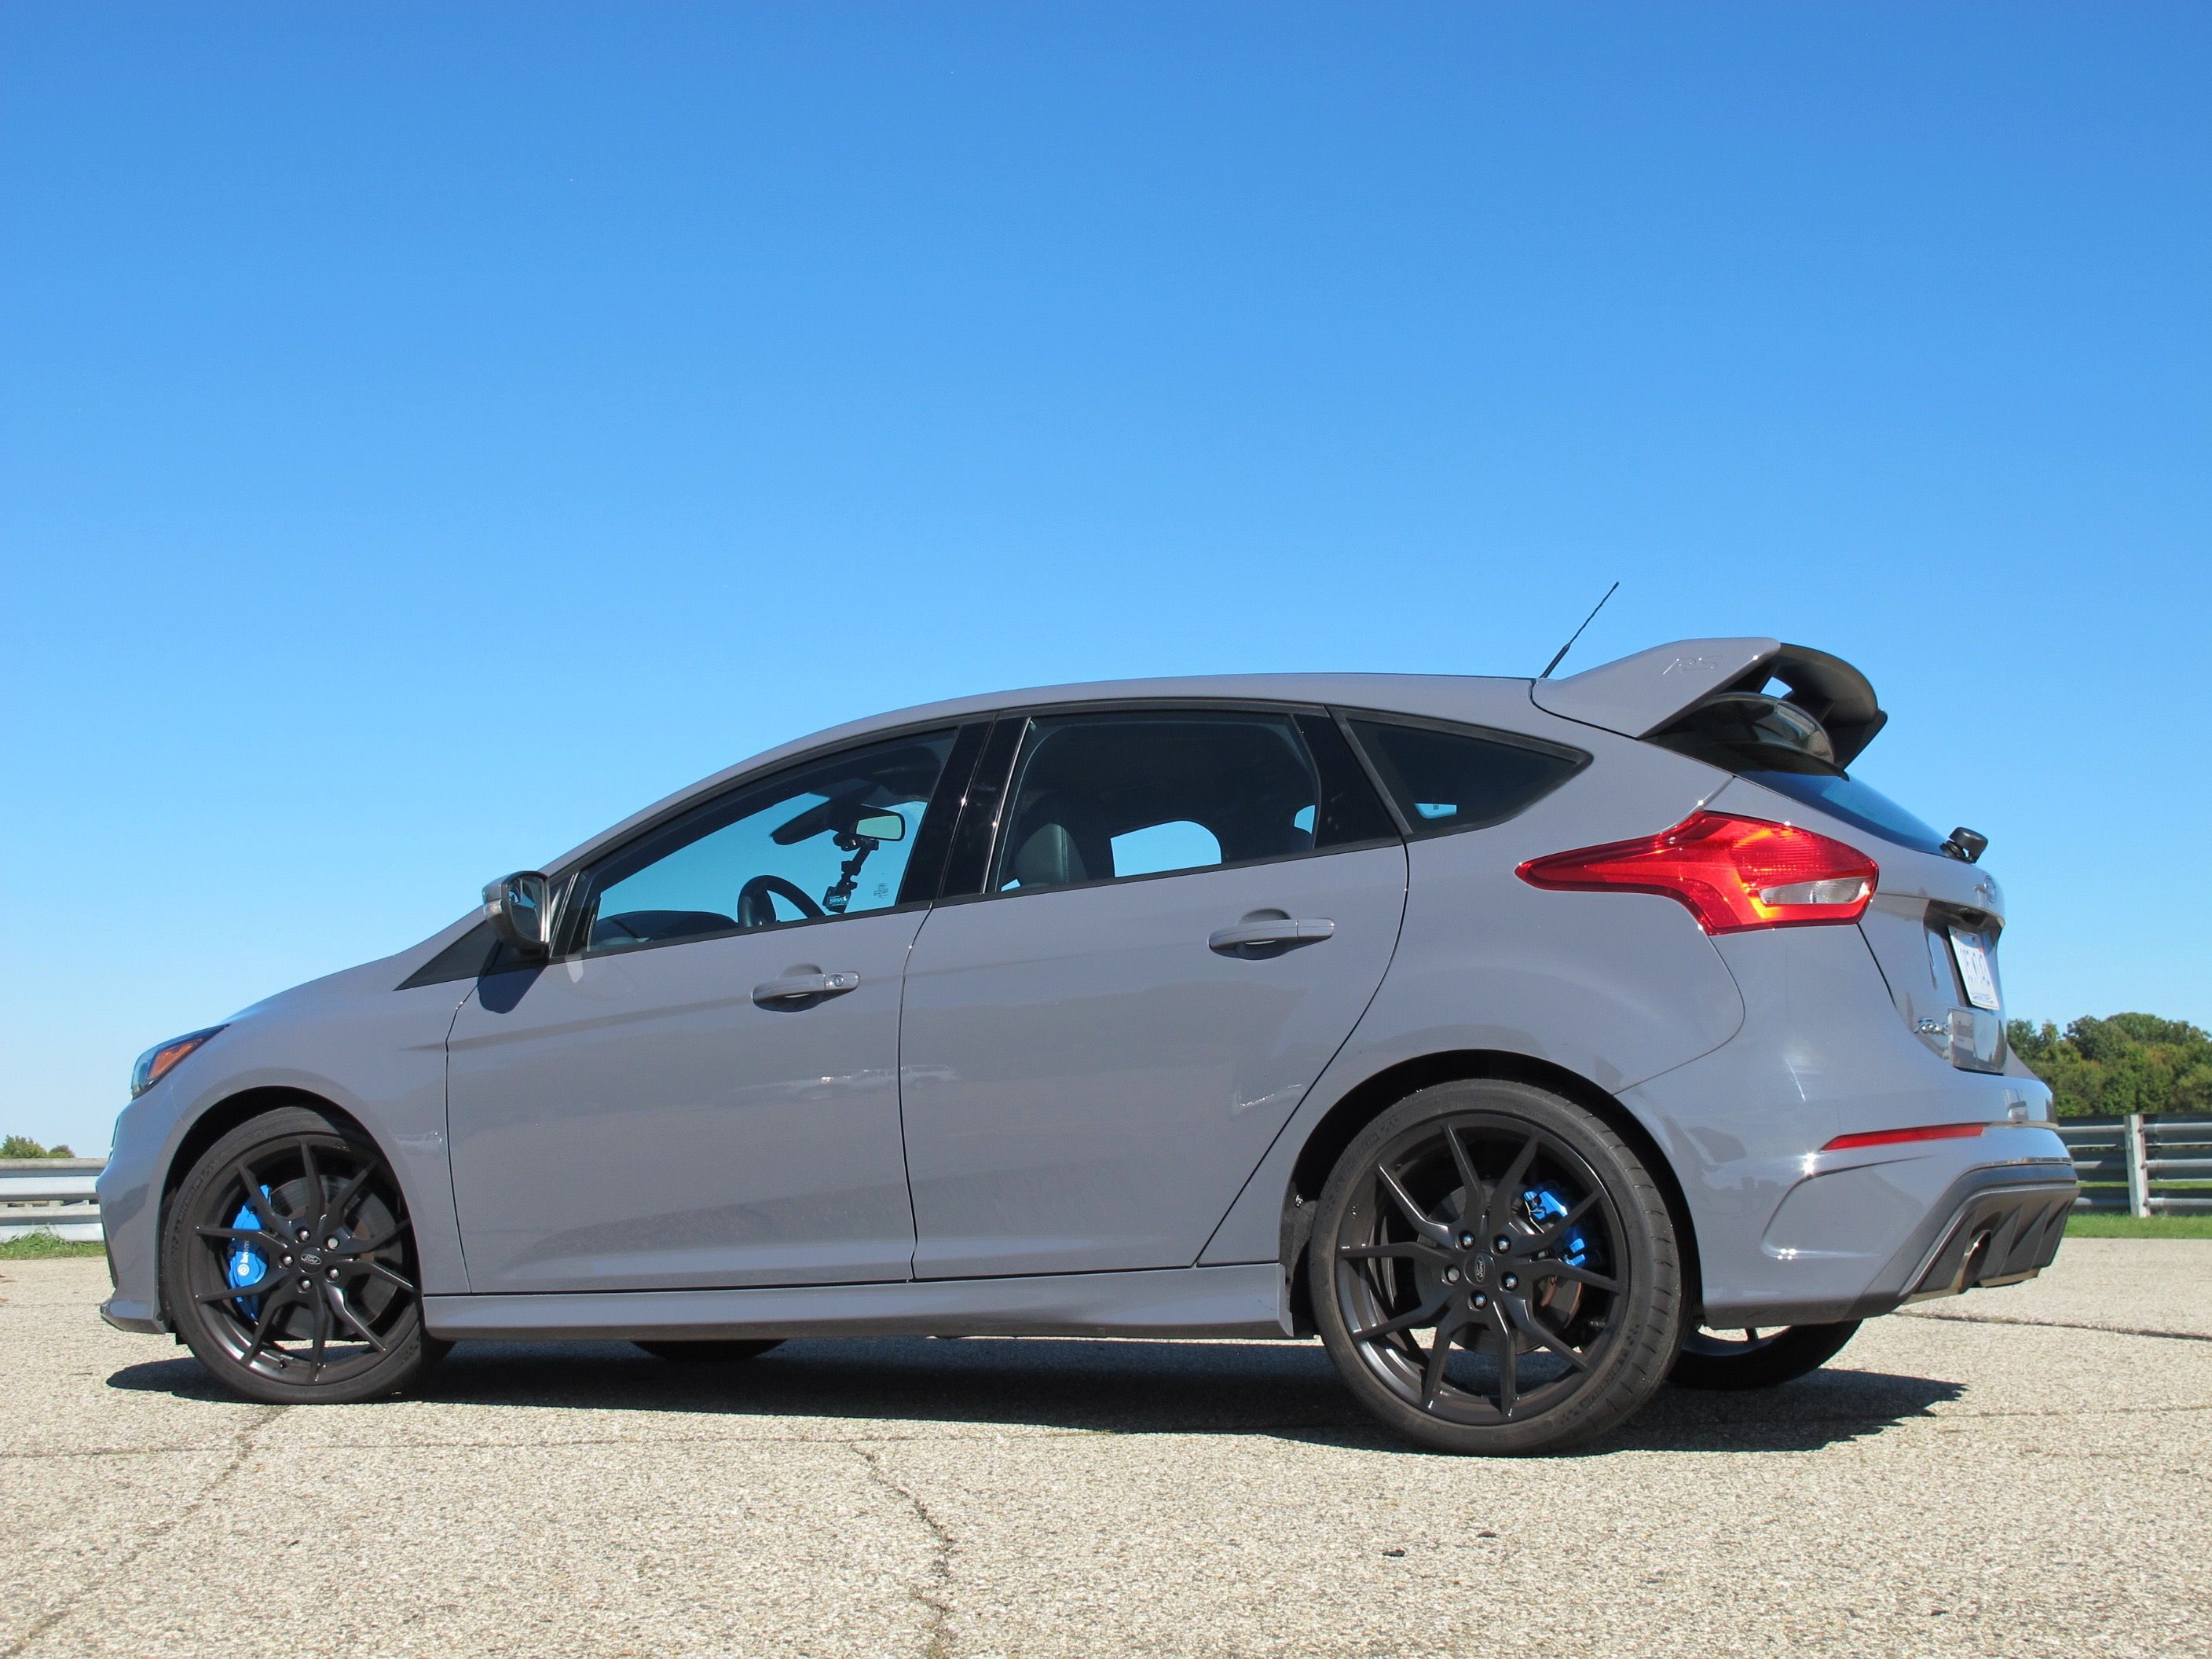 2016 Ford Focus Rs First Drive Review The Hottest Of The Hatches Ford Focus Ford Focus Rs Focus Rs